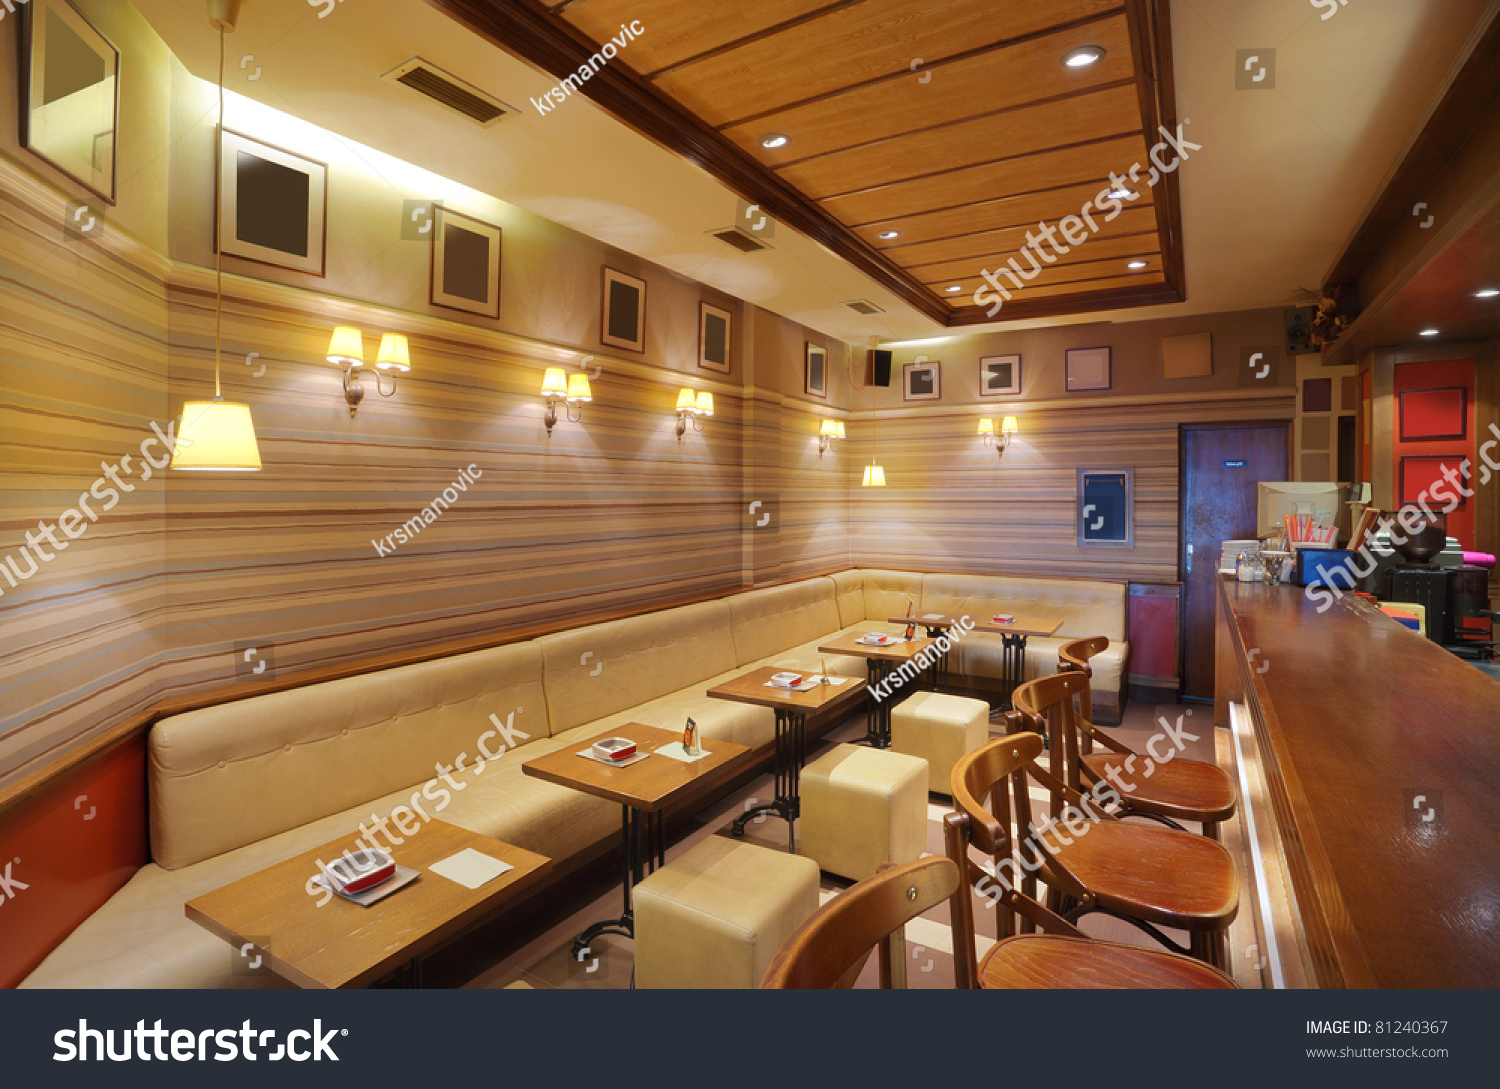 cafe interior wooden furniture lighting equipment stock photo